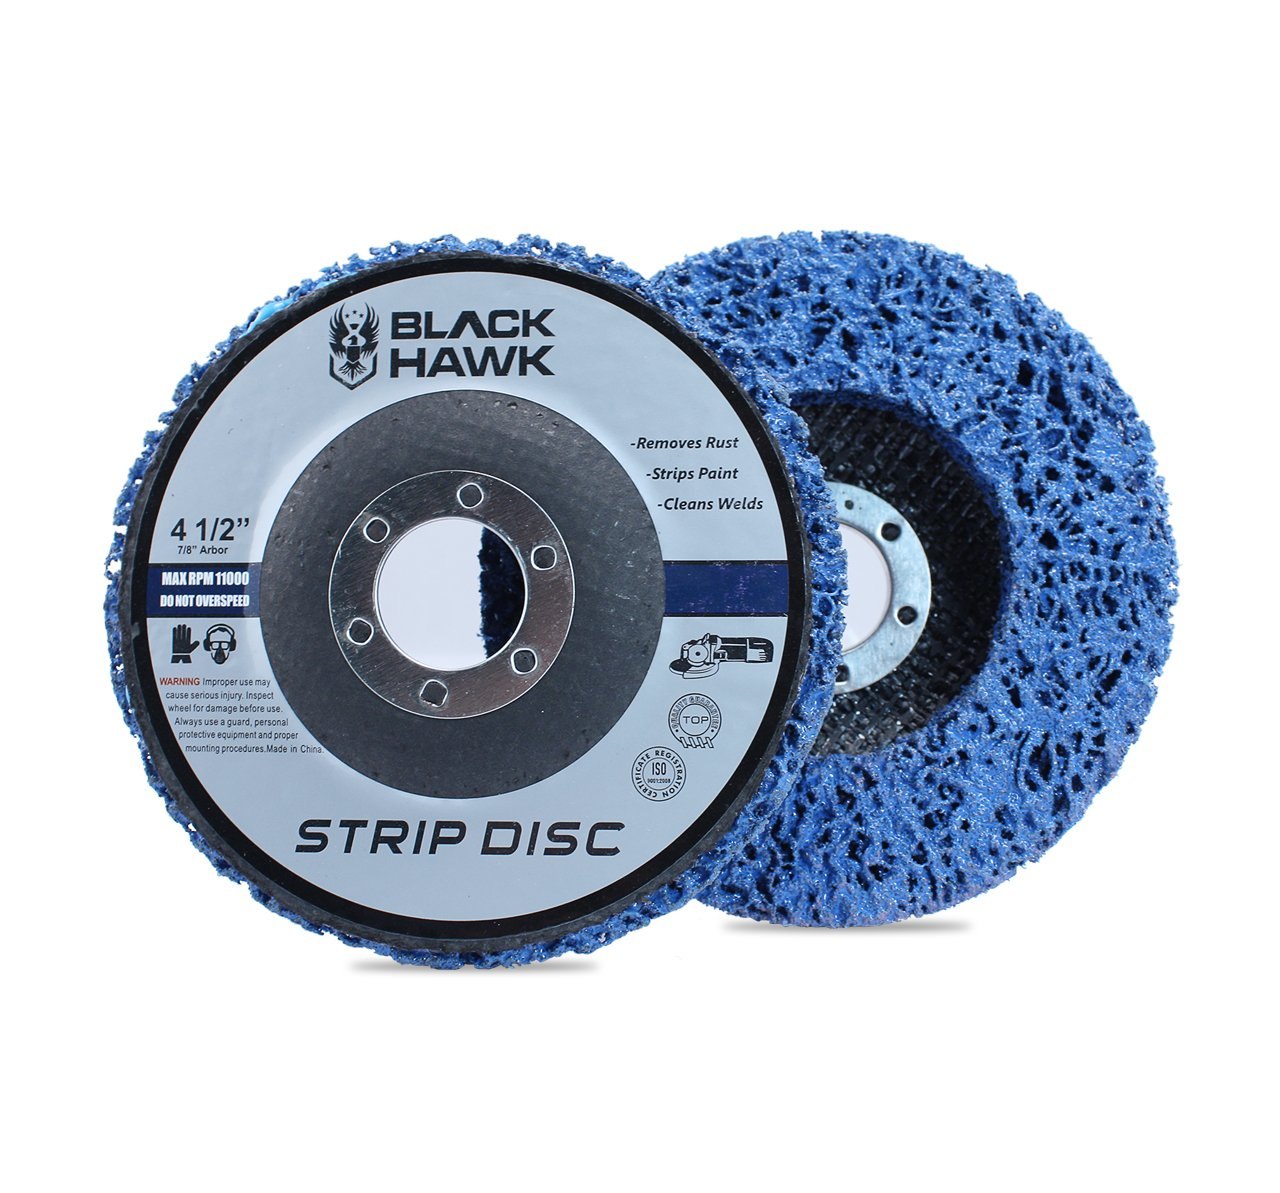 "5 Pack - 4-1/2"" x 7/8"" Black Hawk Easy Strip Discs Clean & Remove Paint, Rust and Oxidation 71uNPZU2BFTL"